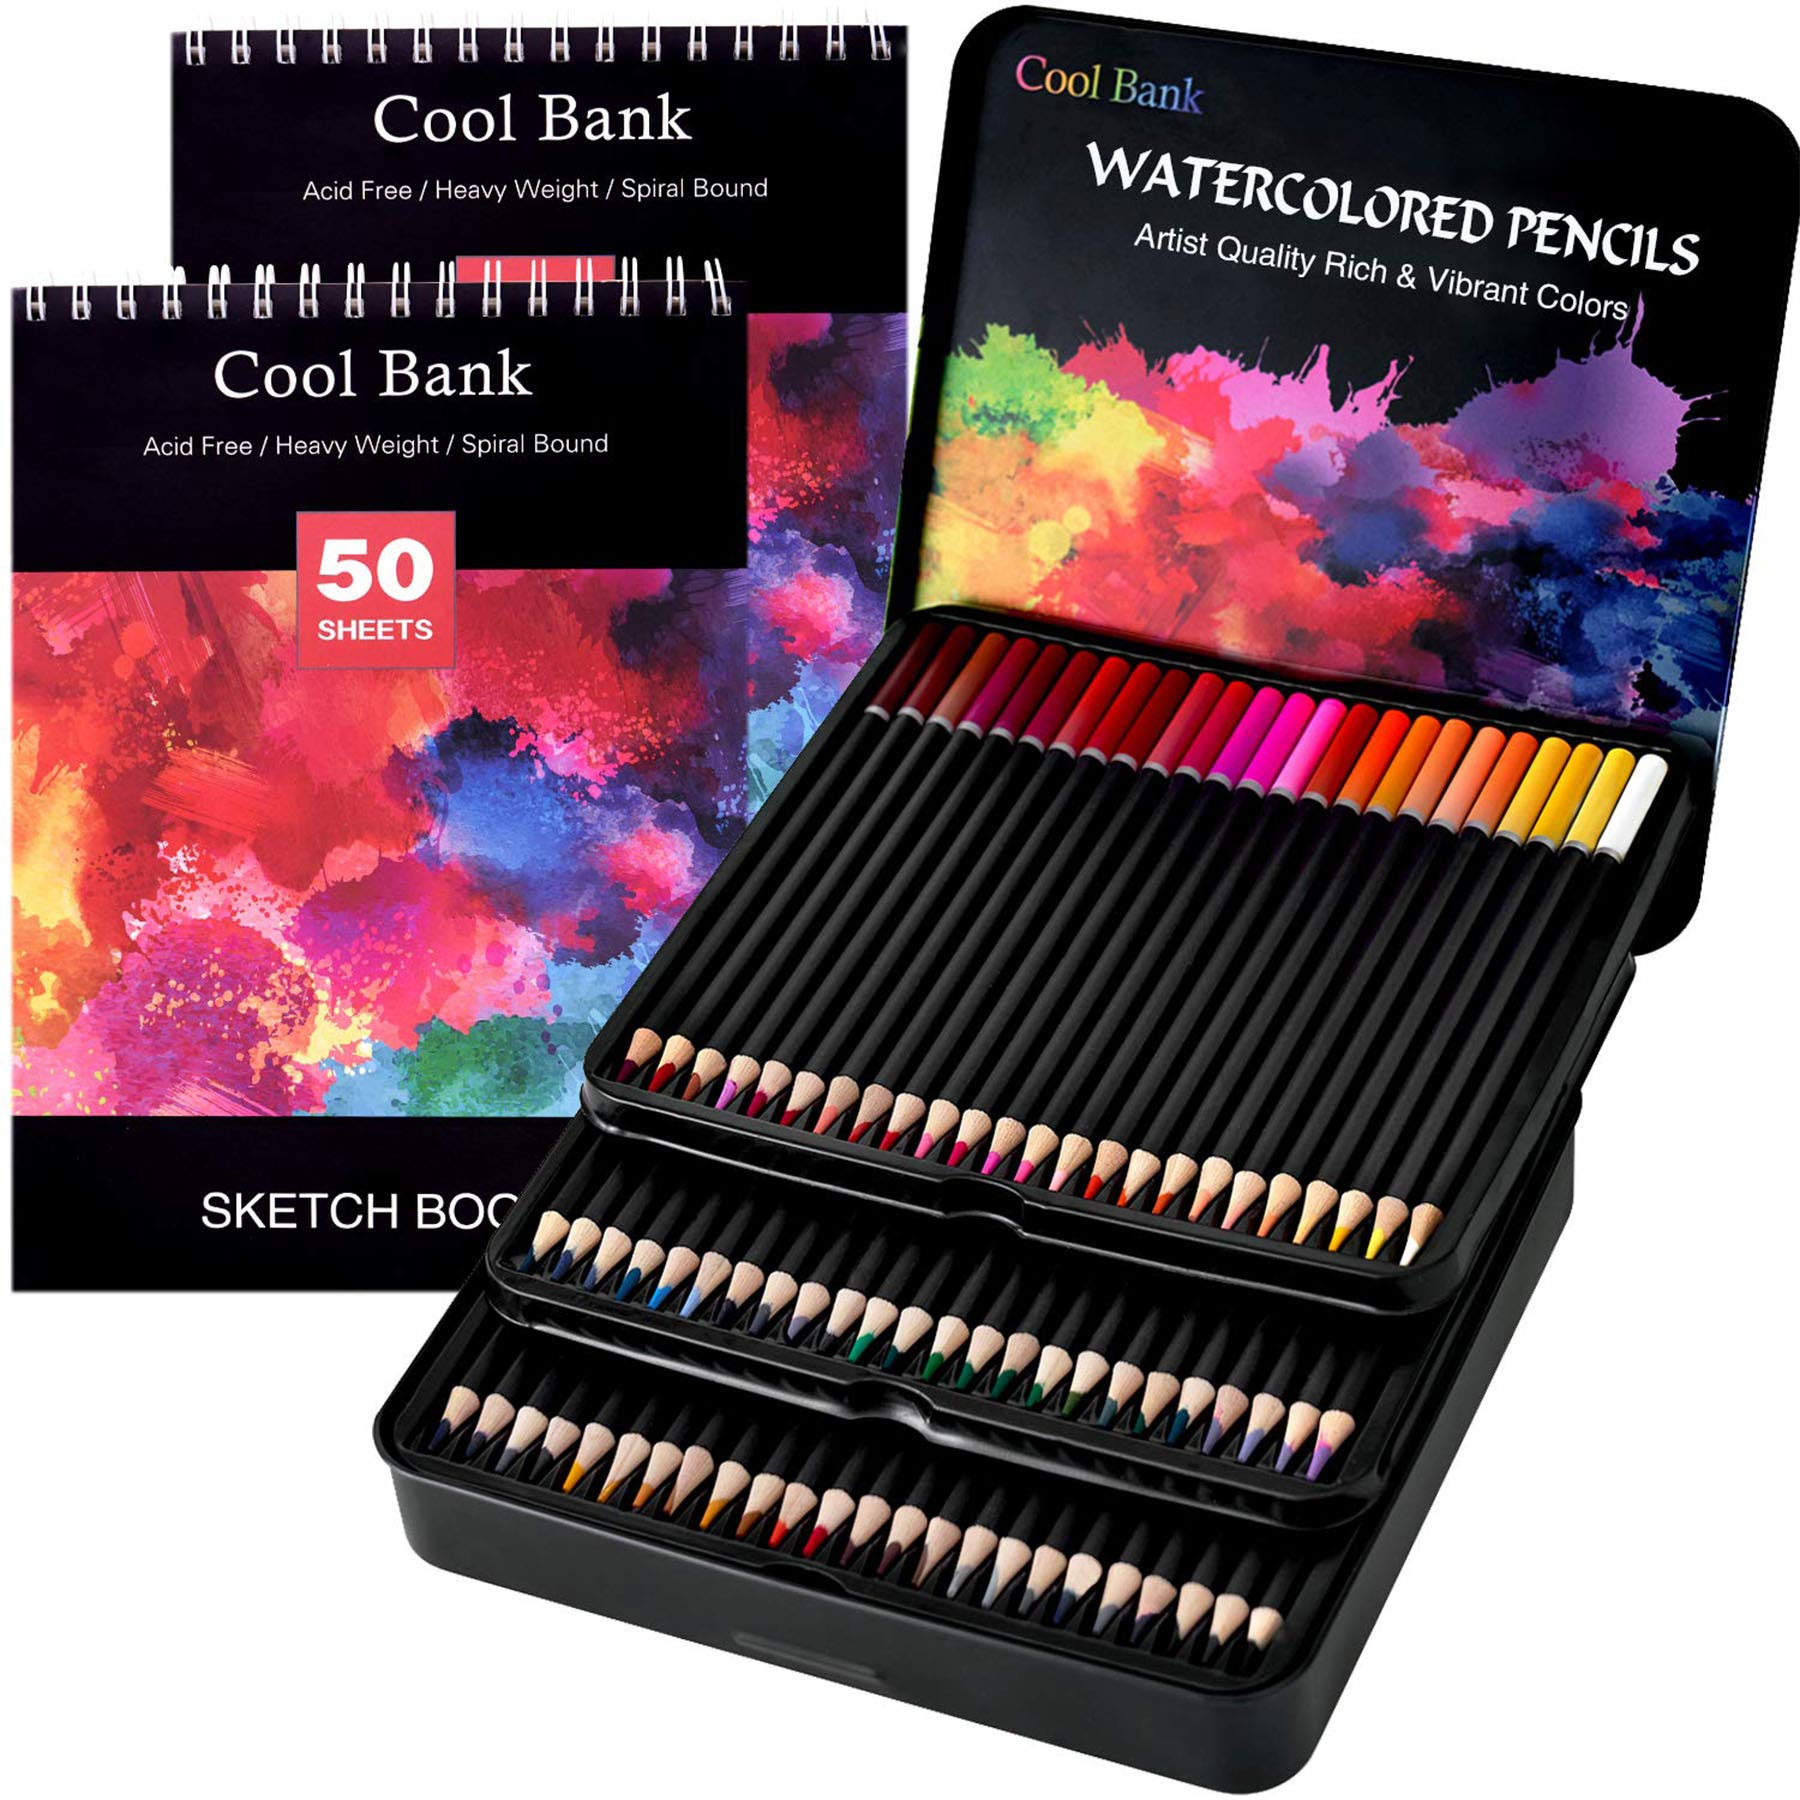 72 Watercolor Pencils Set with 2 x 50 Page Drawing Pad for Kids, Adults and Professionals, Premium Artist Lead with Vibrant Colors, Ideal for Coloring, Blending and Layering, Watercolor Techniques by COOL BANK